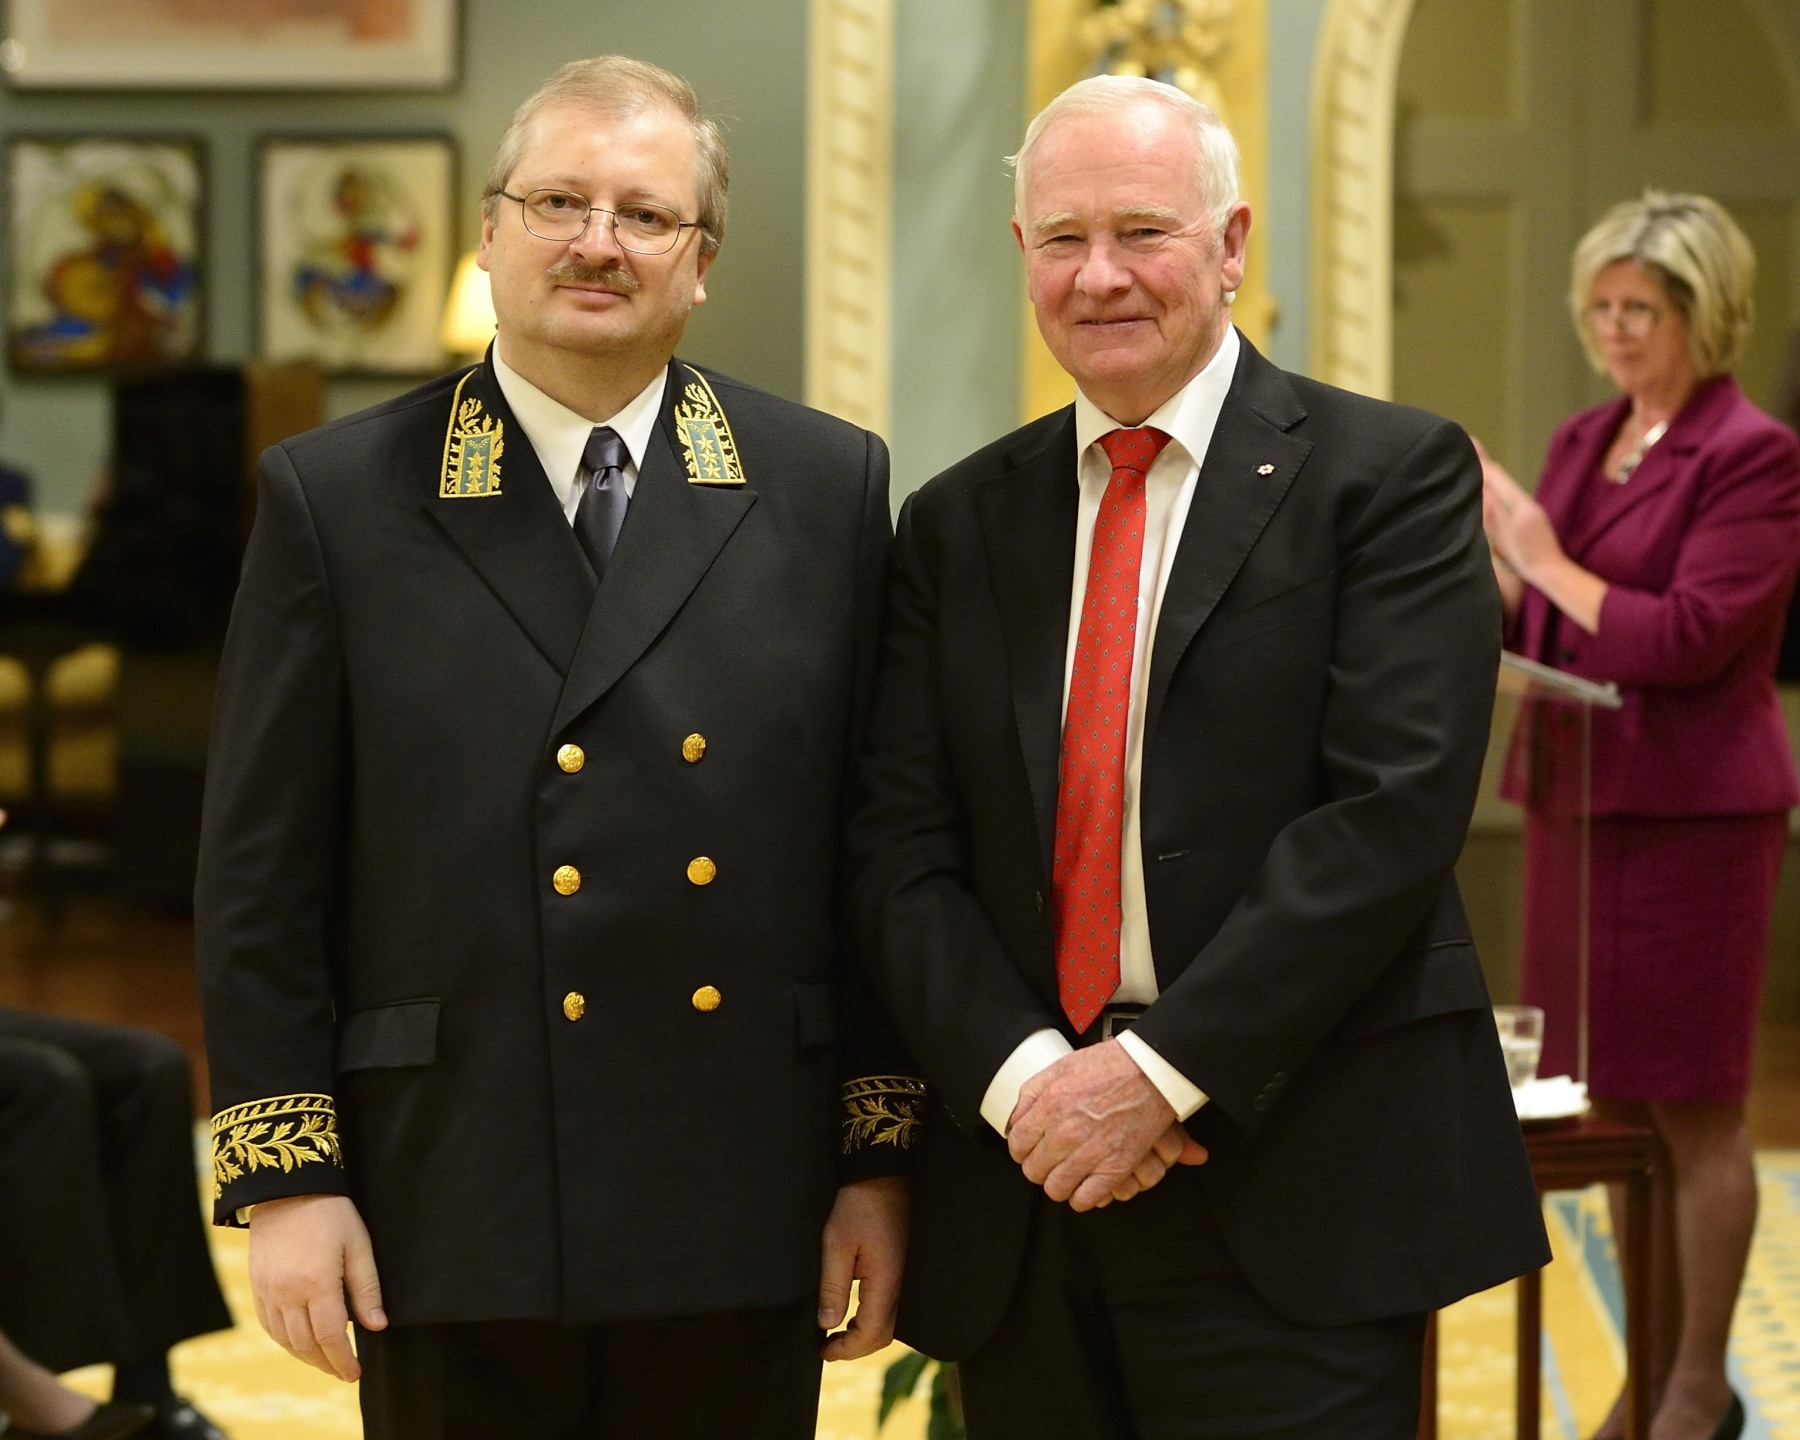 He first received the letters of credence of His Excellency Alexander Darchiev, Ambassador of the Russian Federation.